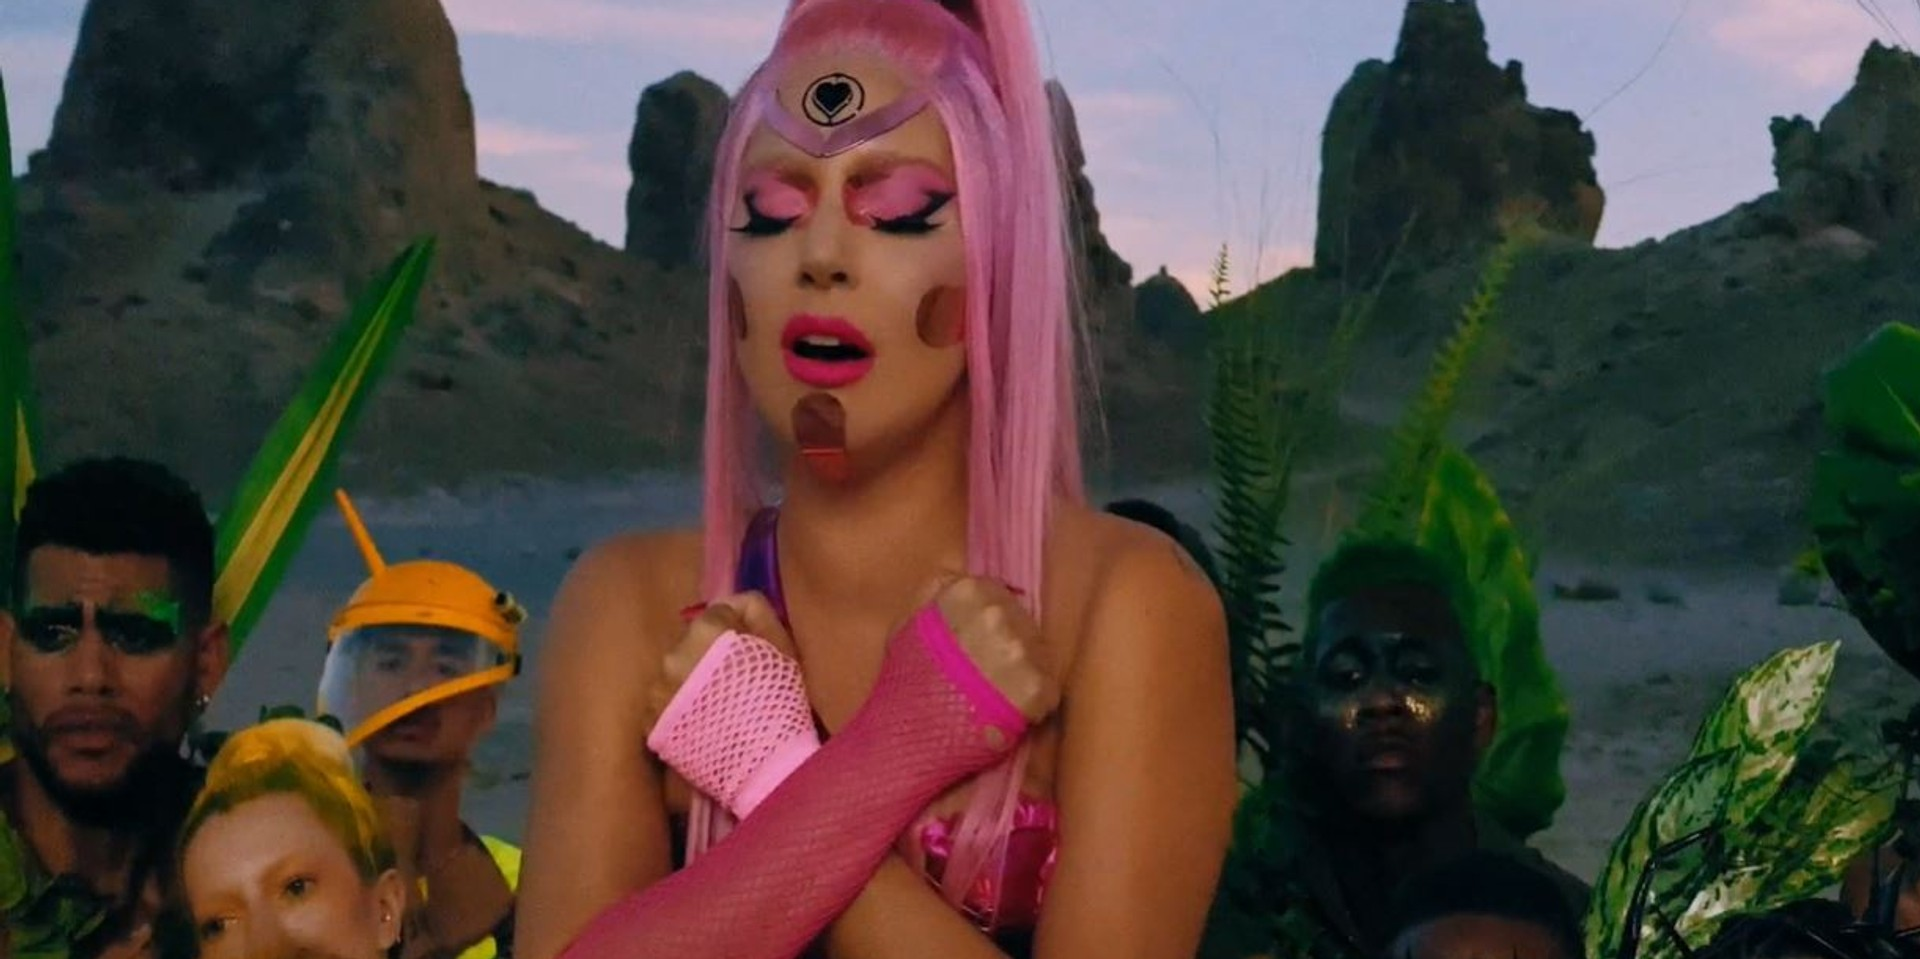 Lady Gaga returns with new vibrant music video 'Stupid Love' – watch